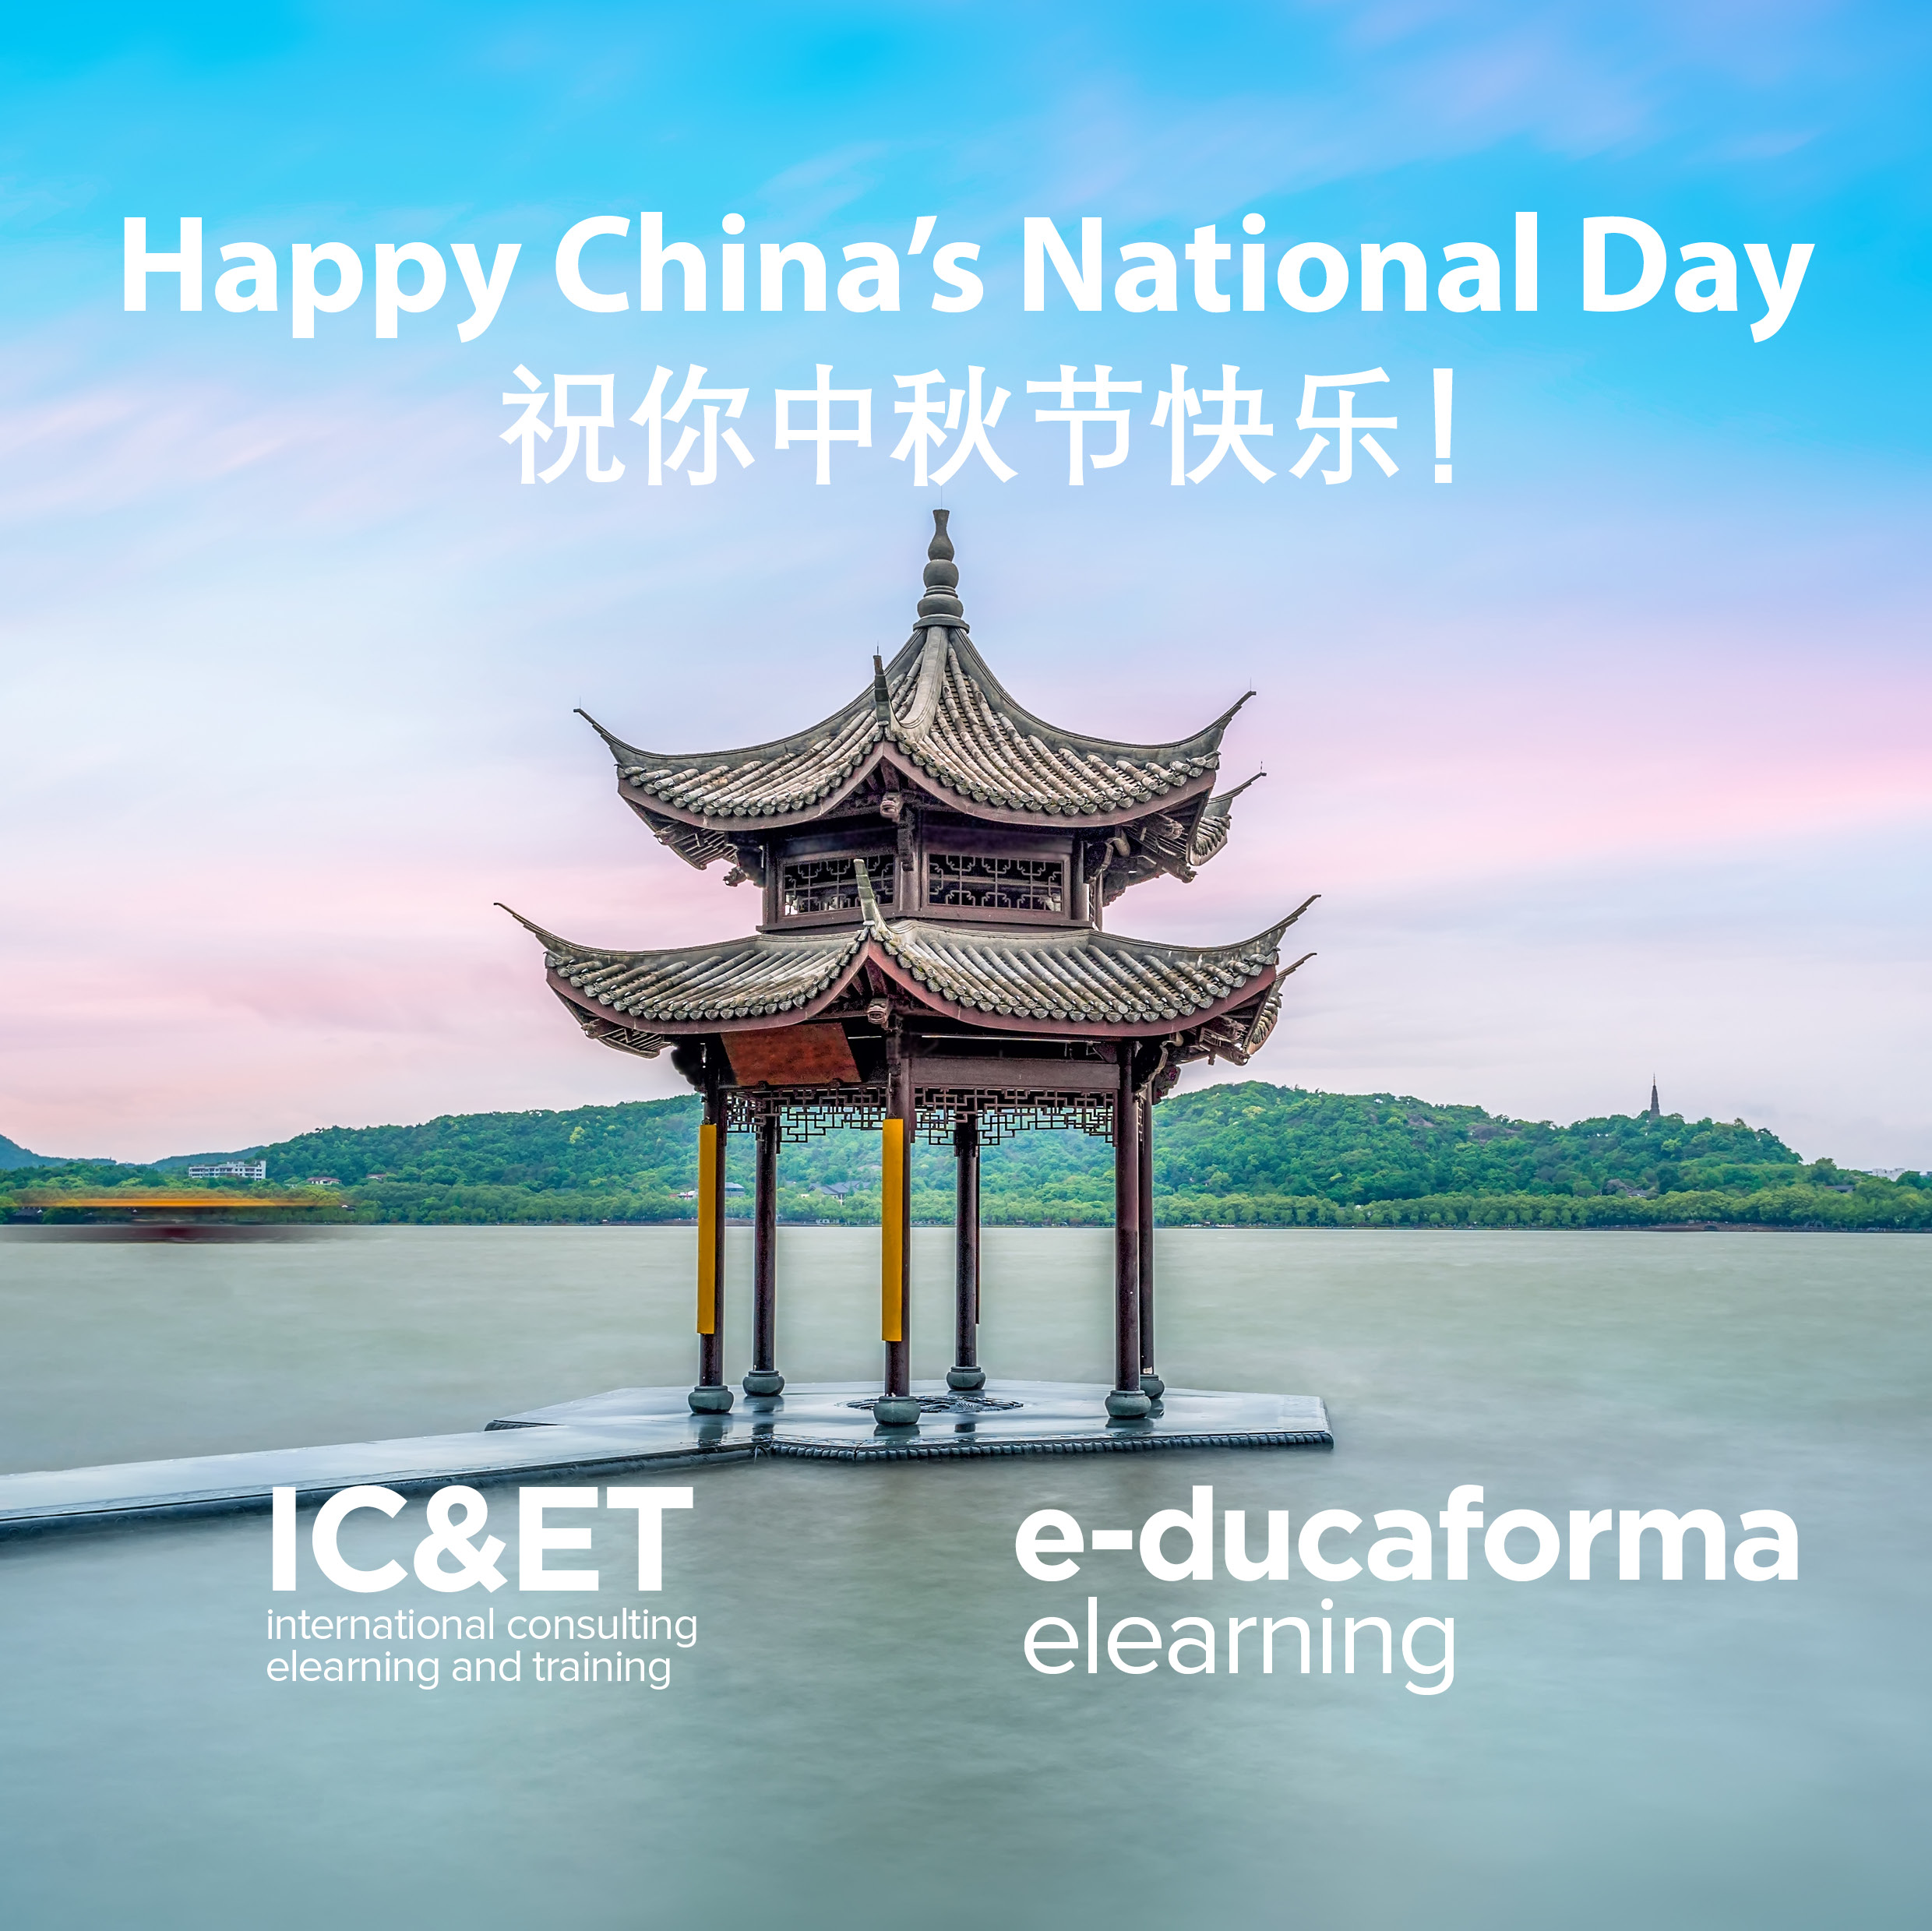 Happy China's National Day.